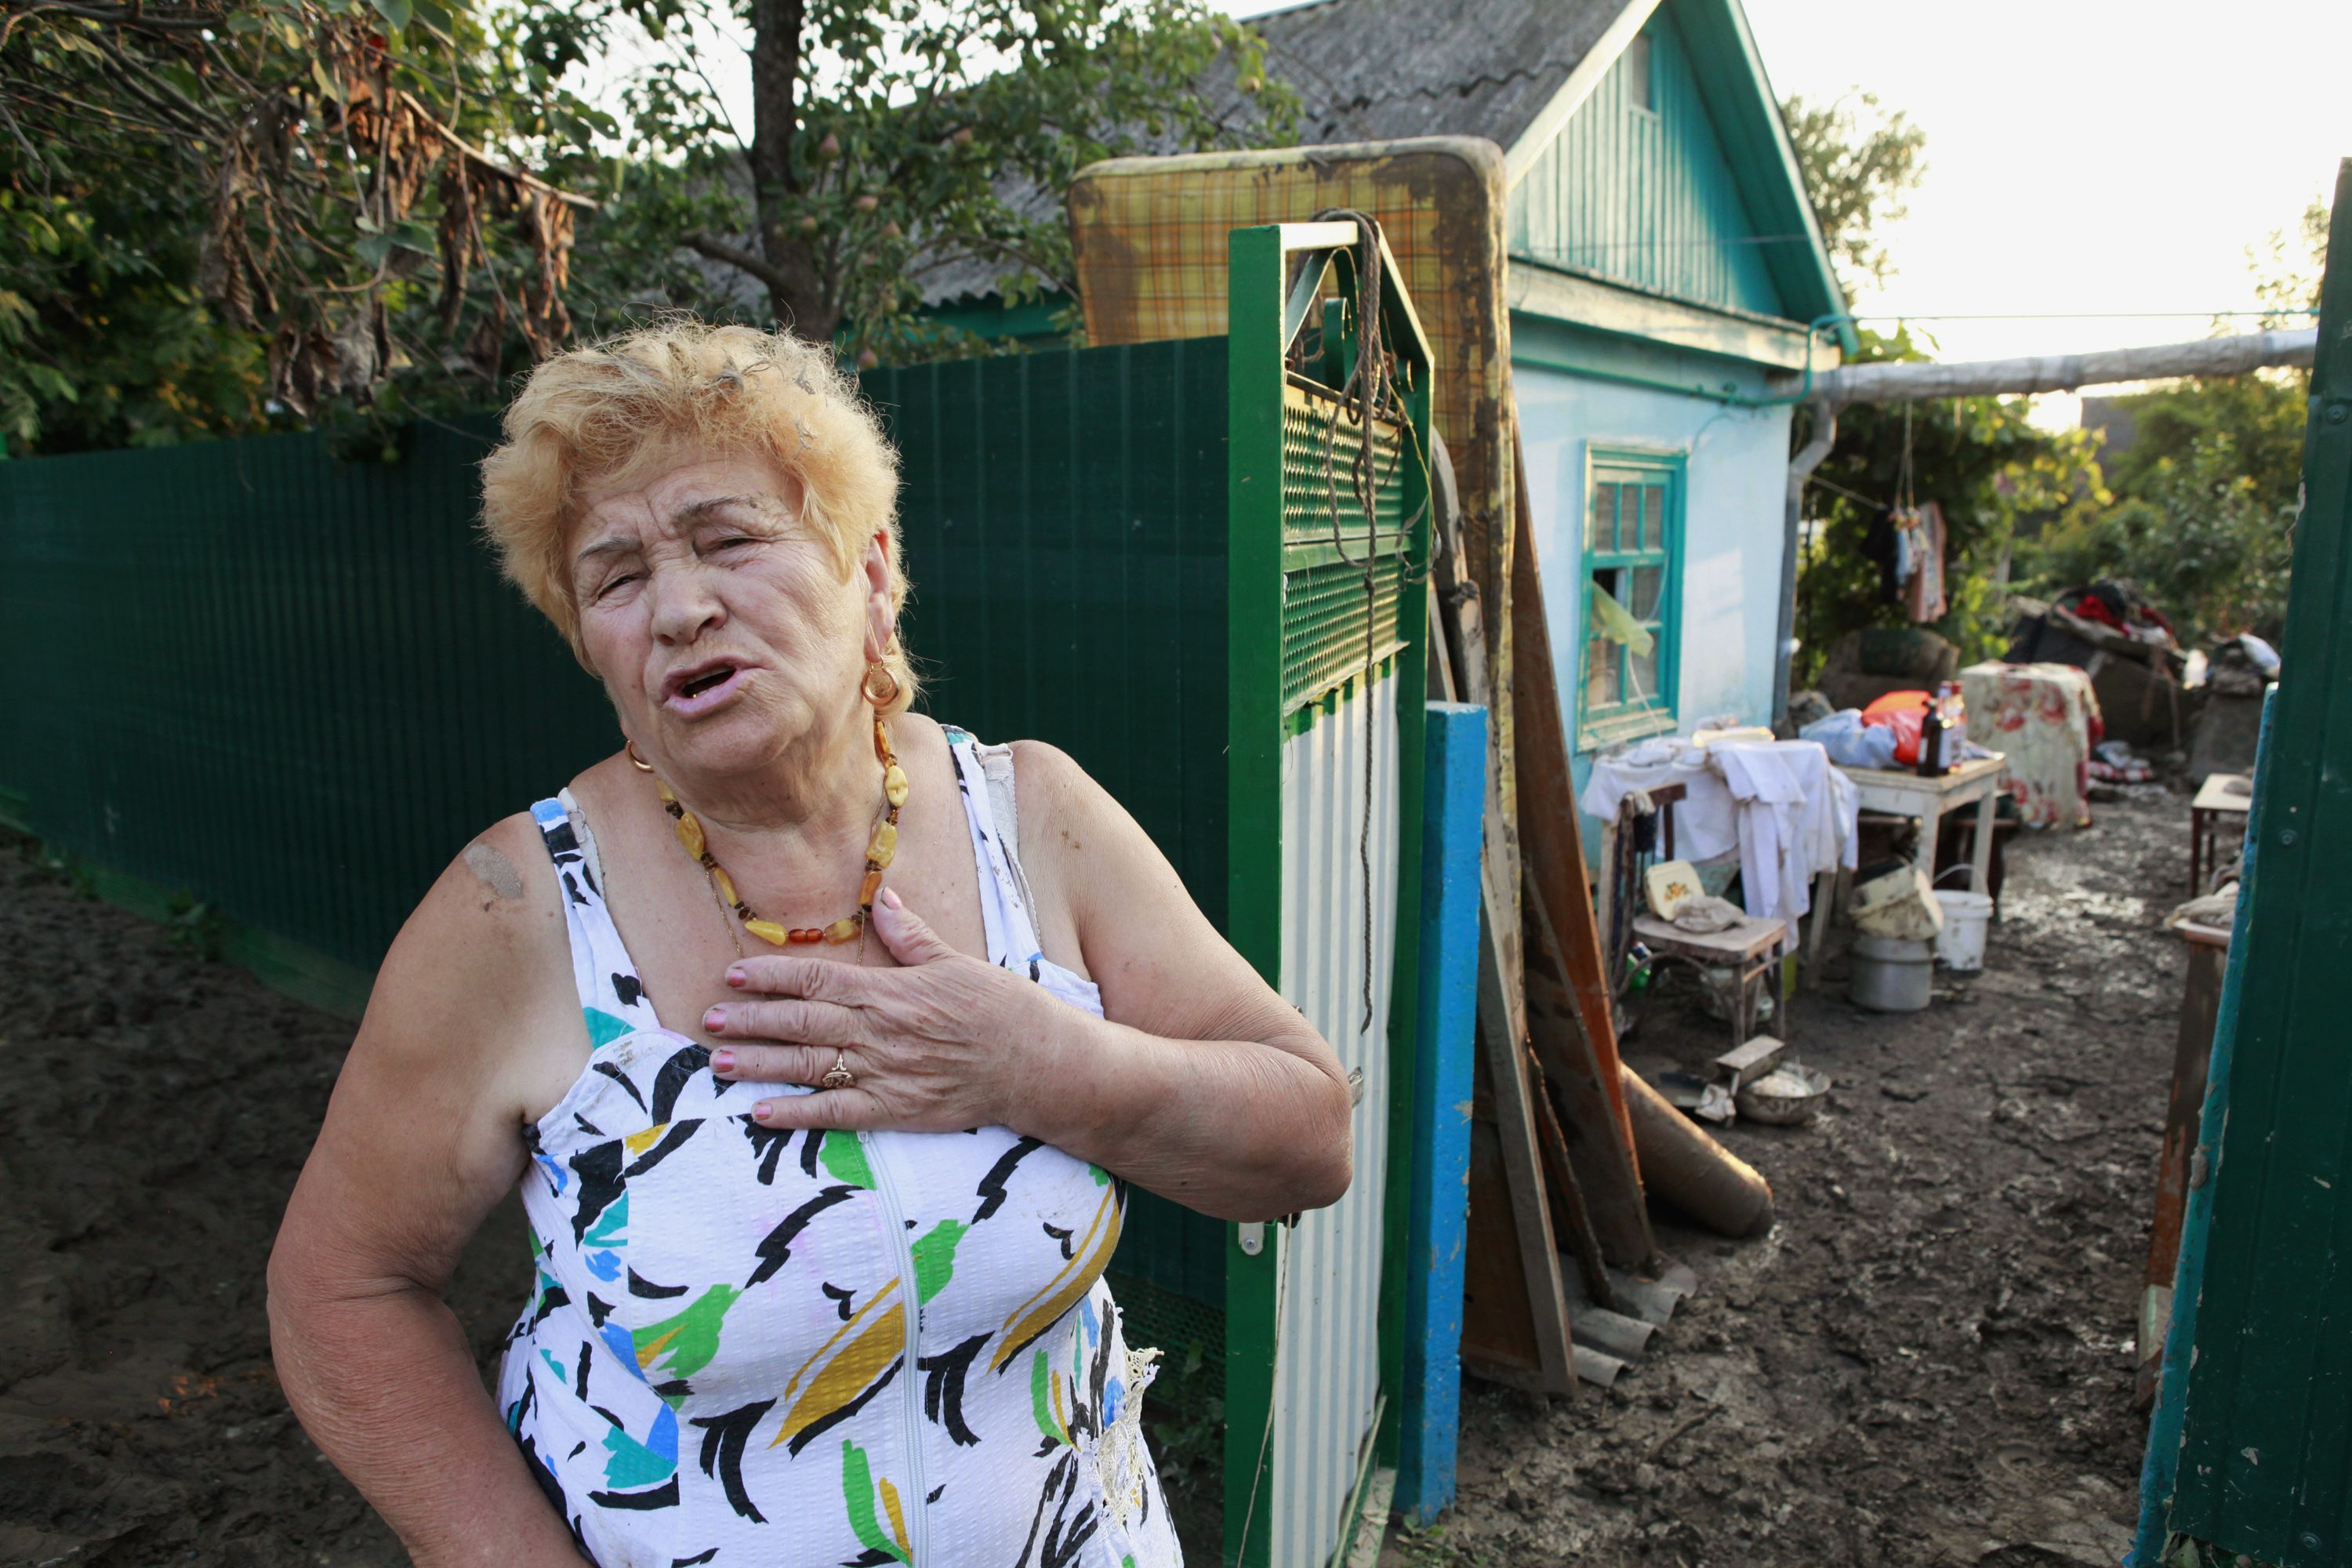 A woman speaks as she stands in a street, hit by floods, in the town of Krymsk